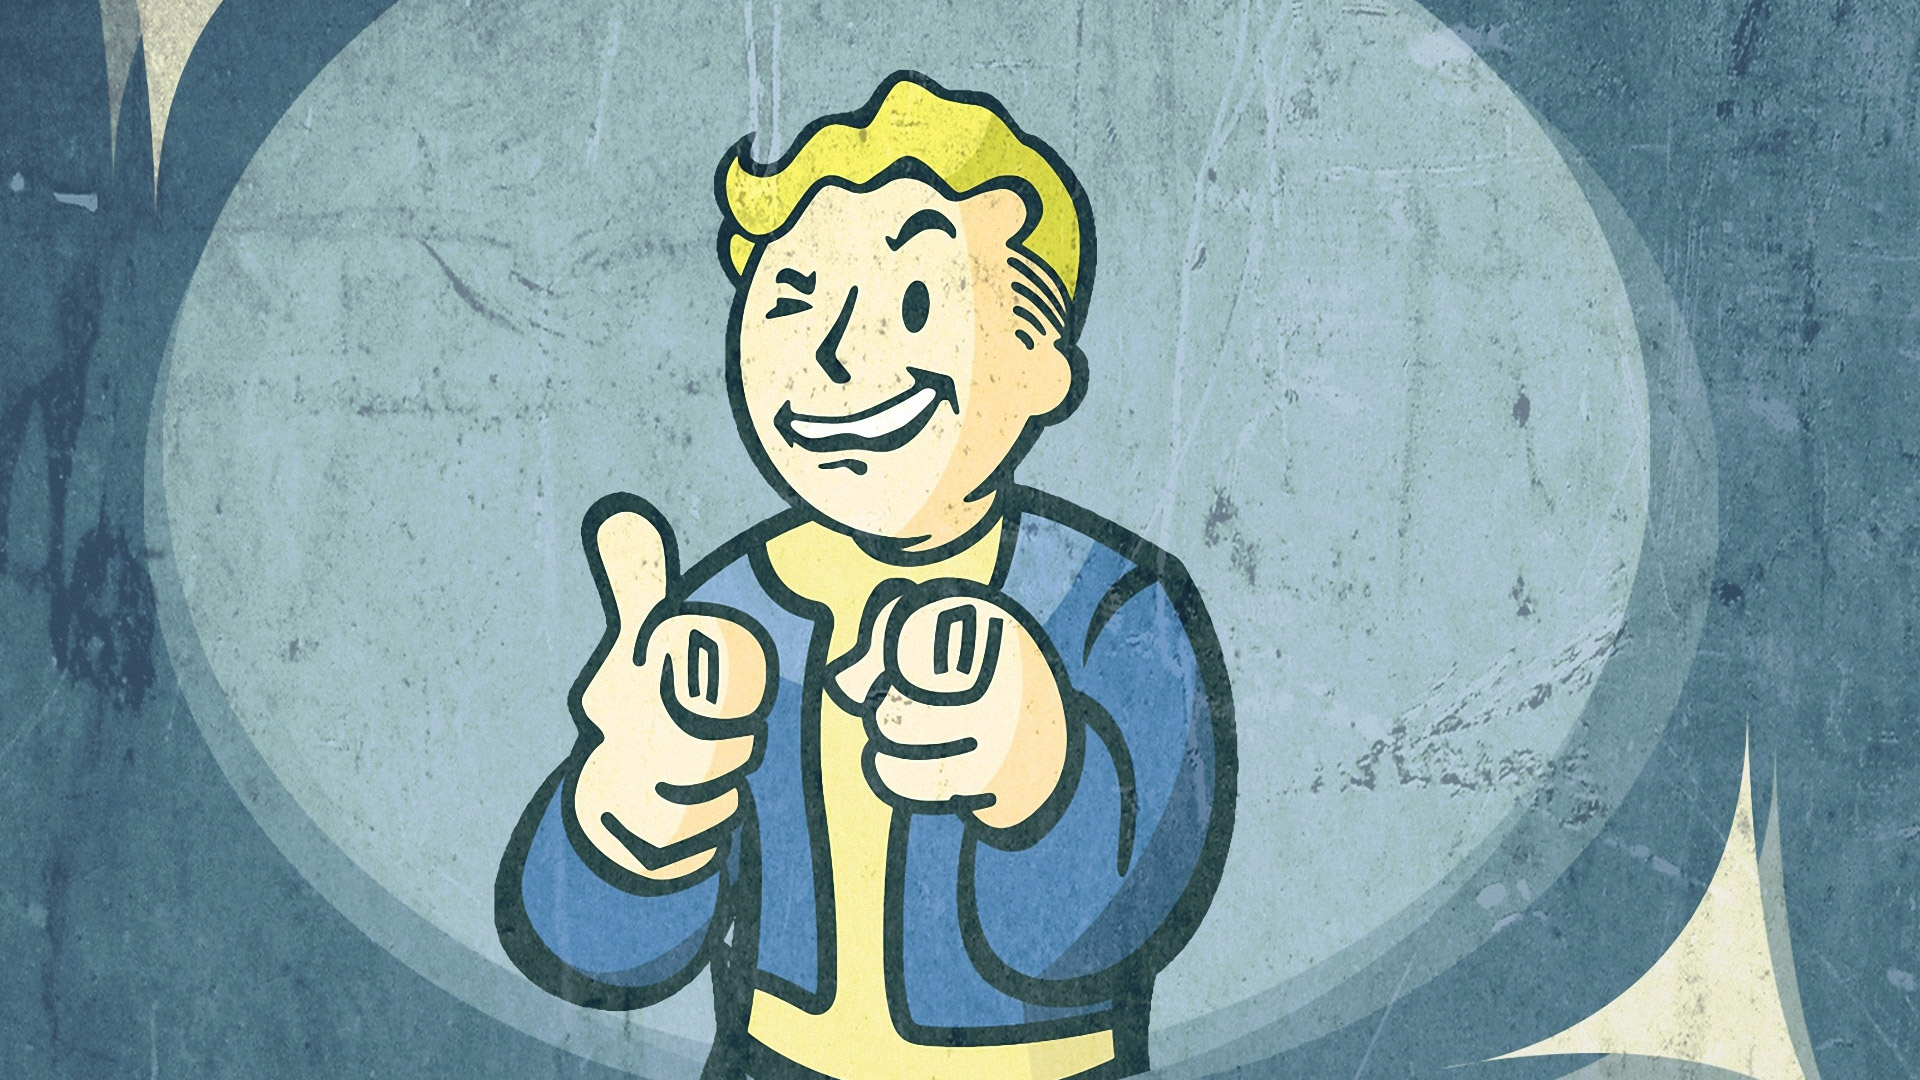 Free Fallout 3 Wallpaper in 1920x1080